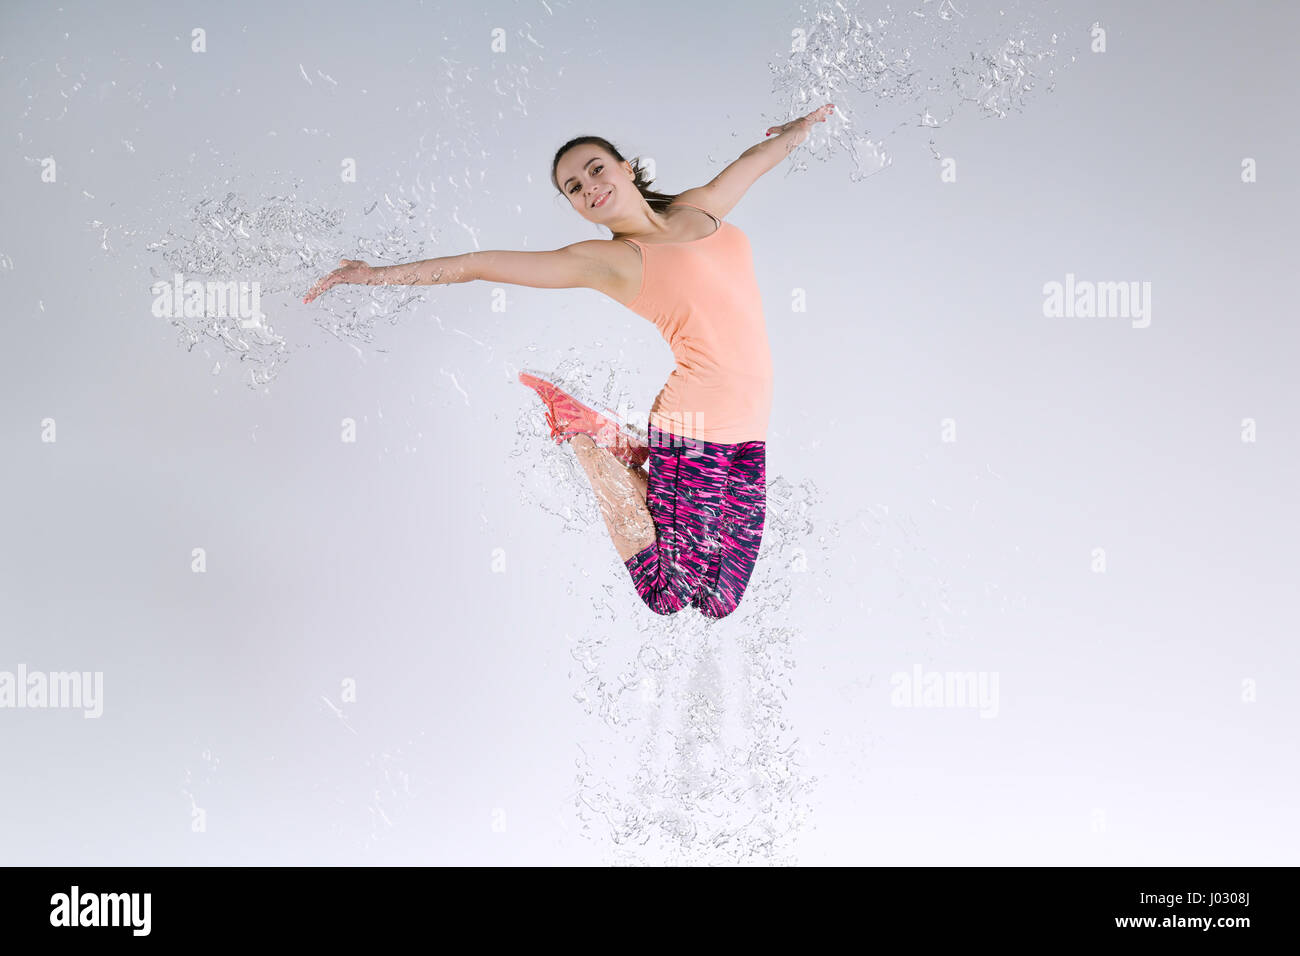 Woman Jumping In The Studio And Splashing Water